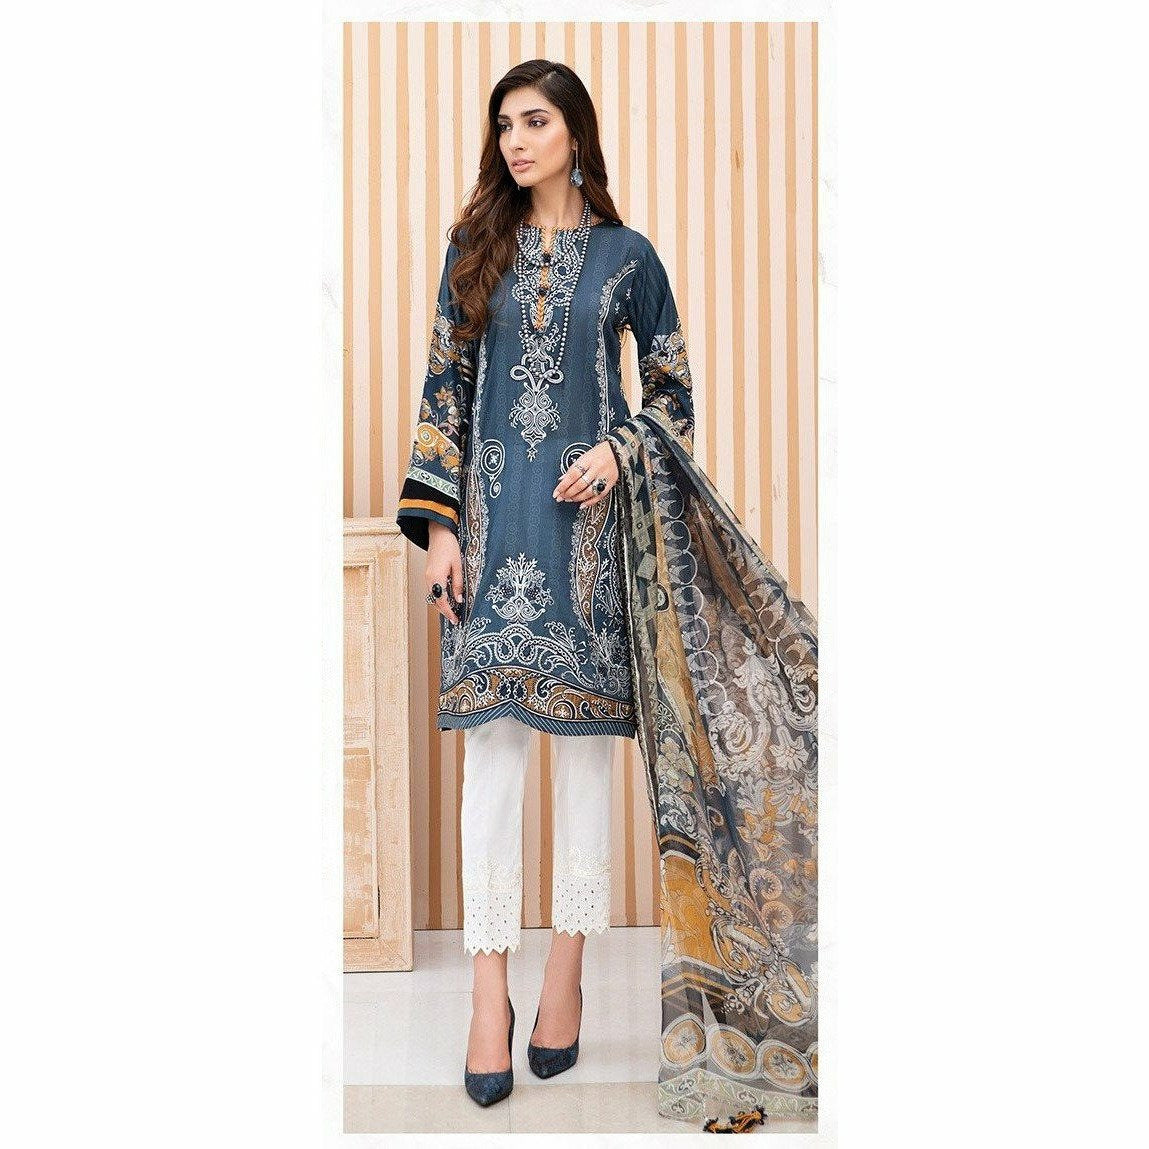 Jazmin |  Iris Lawn 20 Vol 2 | 06 Miral - House of Faiza